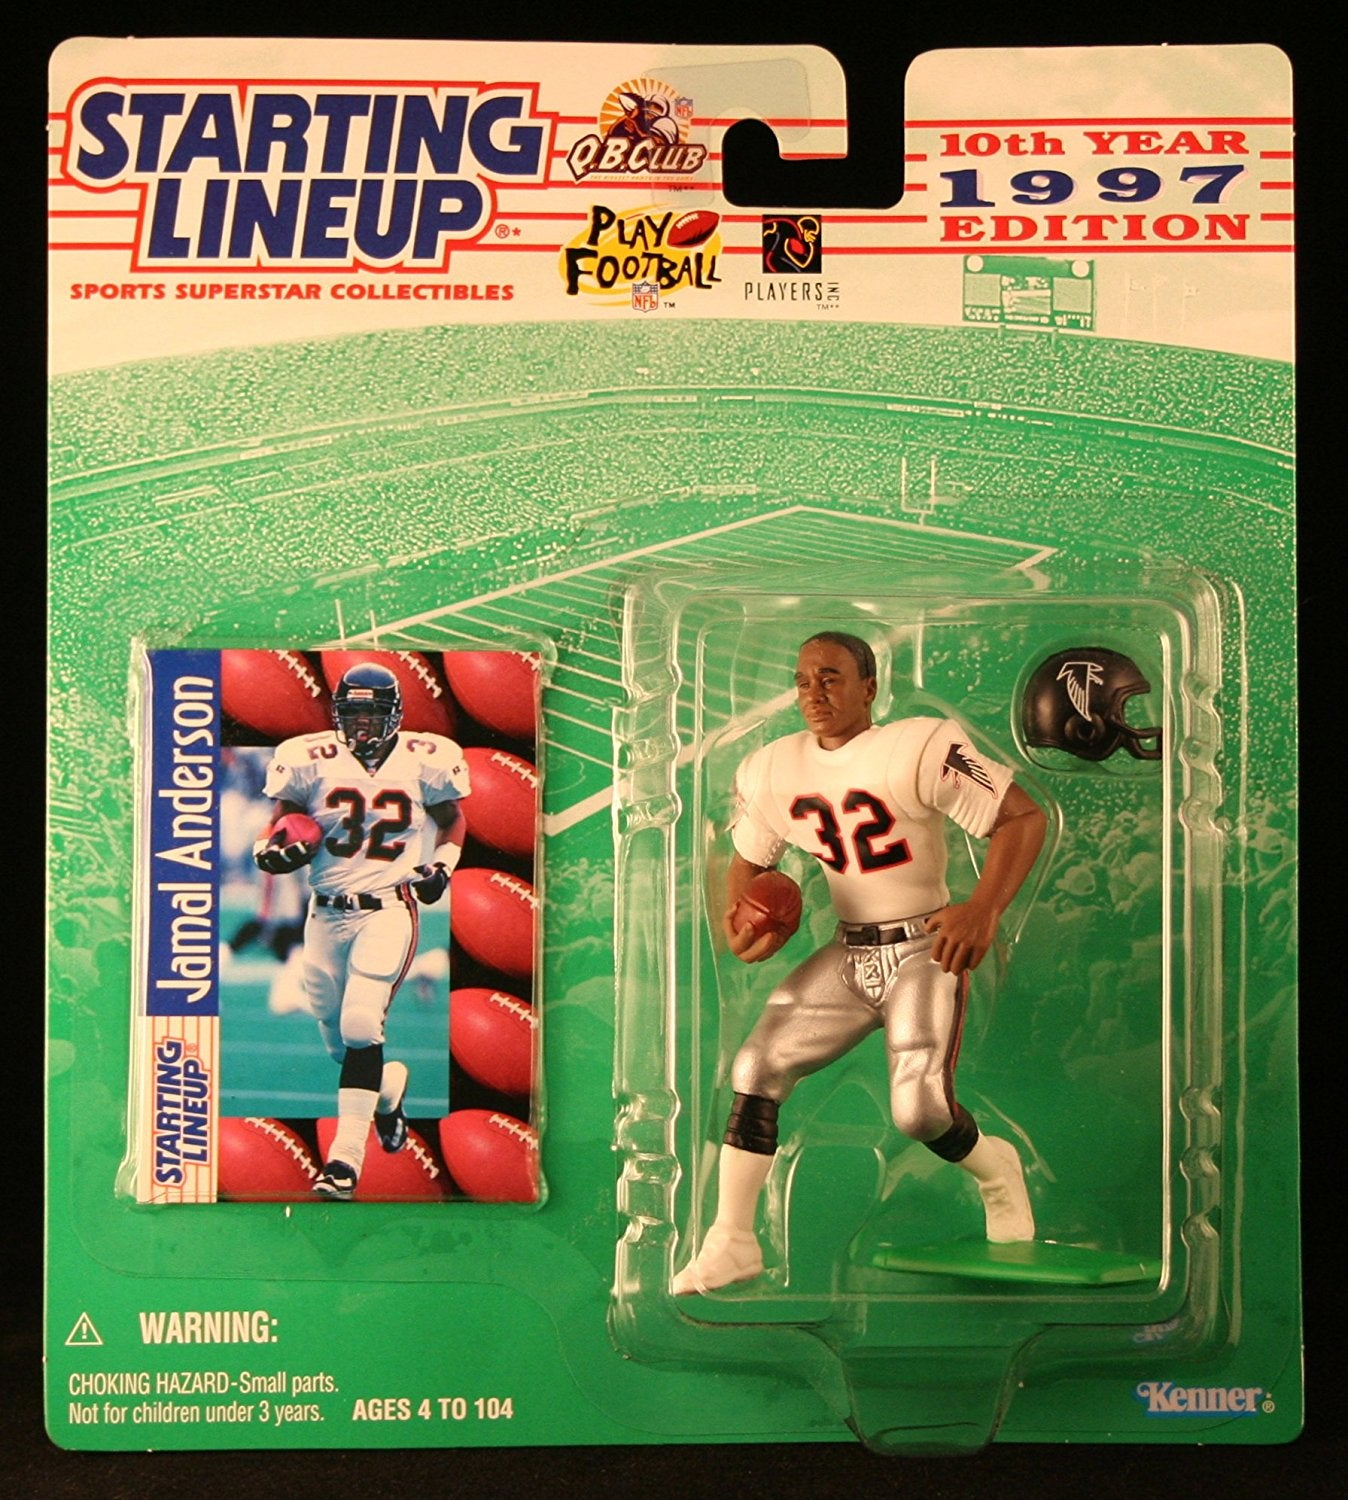 JAMAL ANDERSON / ATLANTA FALCONS 1997 NFL Starting Lineup Action Figure & Exclusive NFL Collector Trading Card